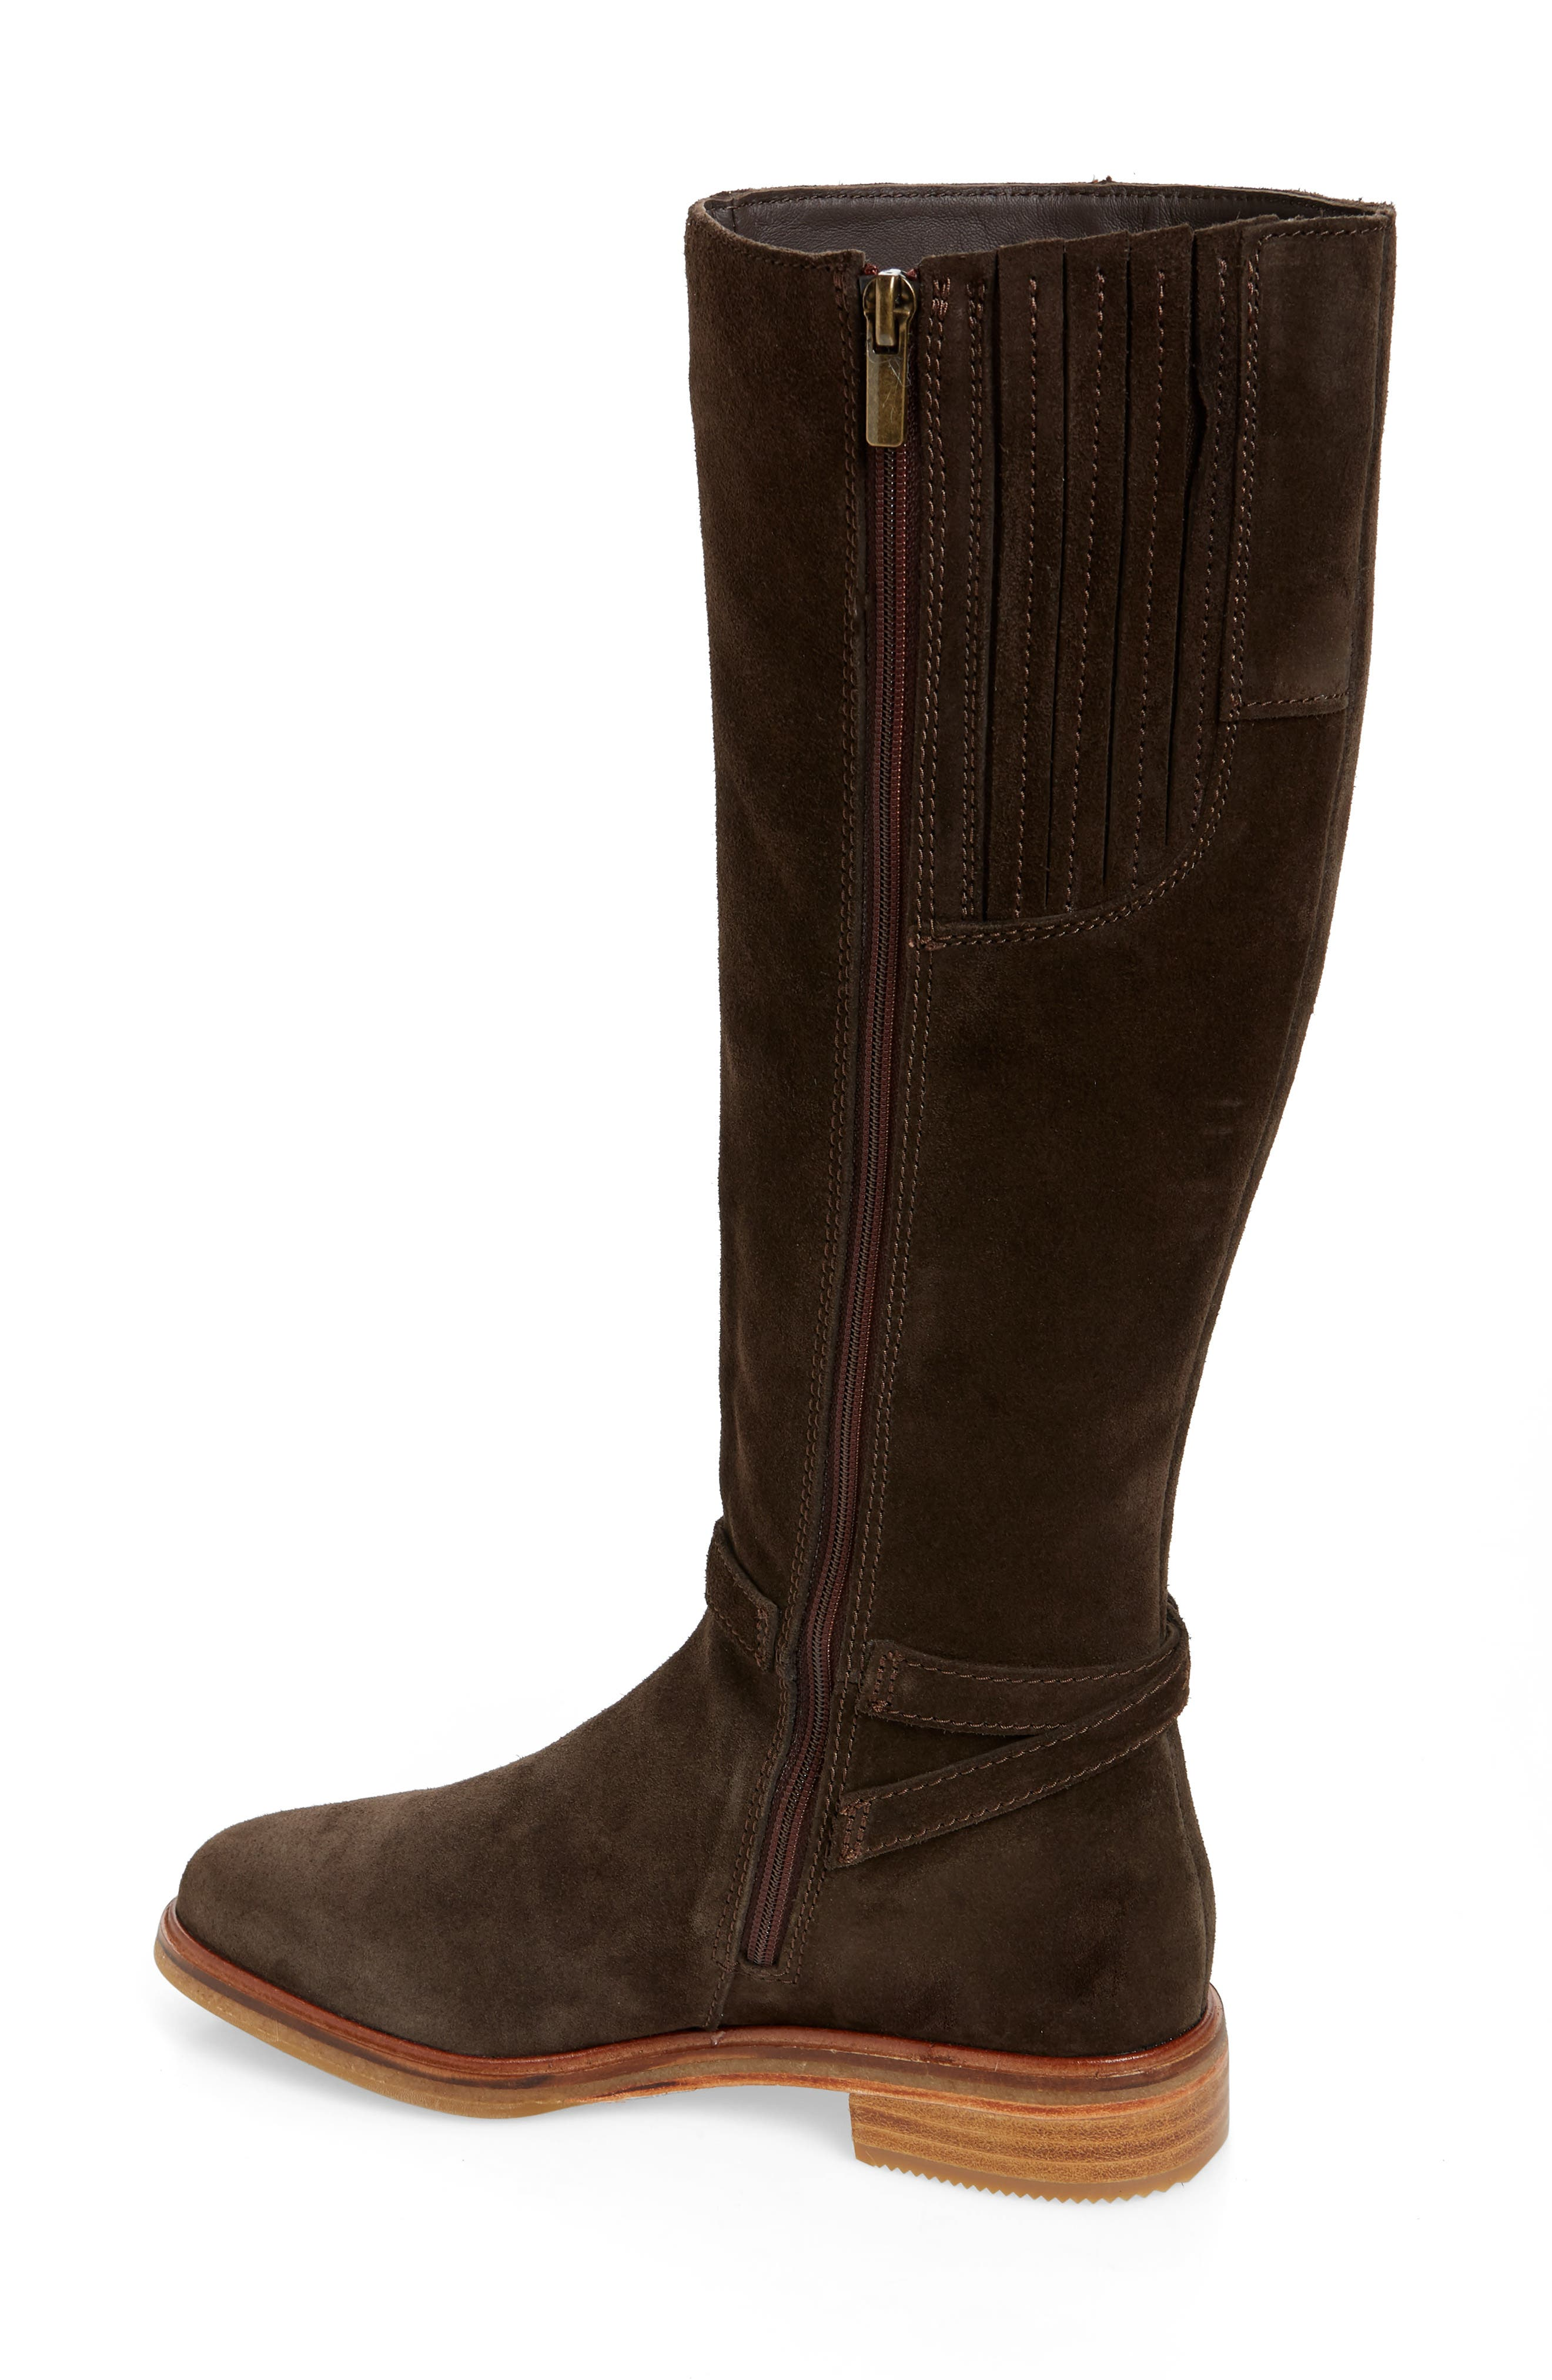 Clarkdale Clad Boot,                             Alternate thumbnail 2, color,                             BROWN SUEDE